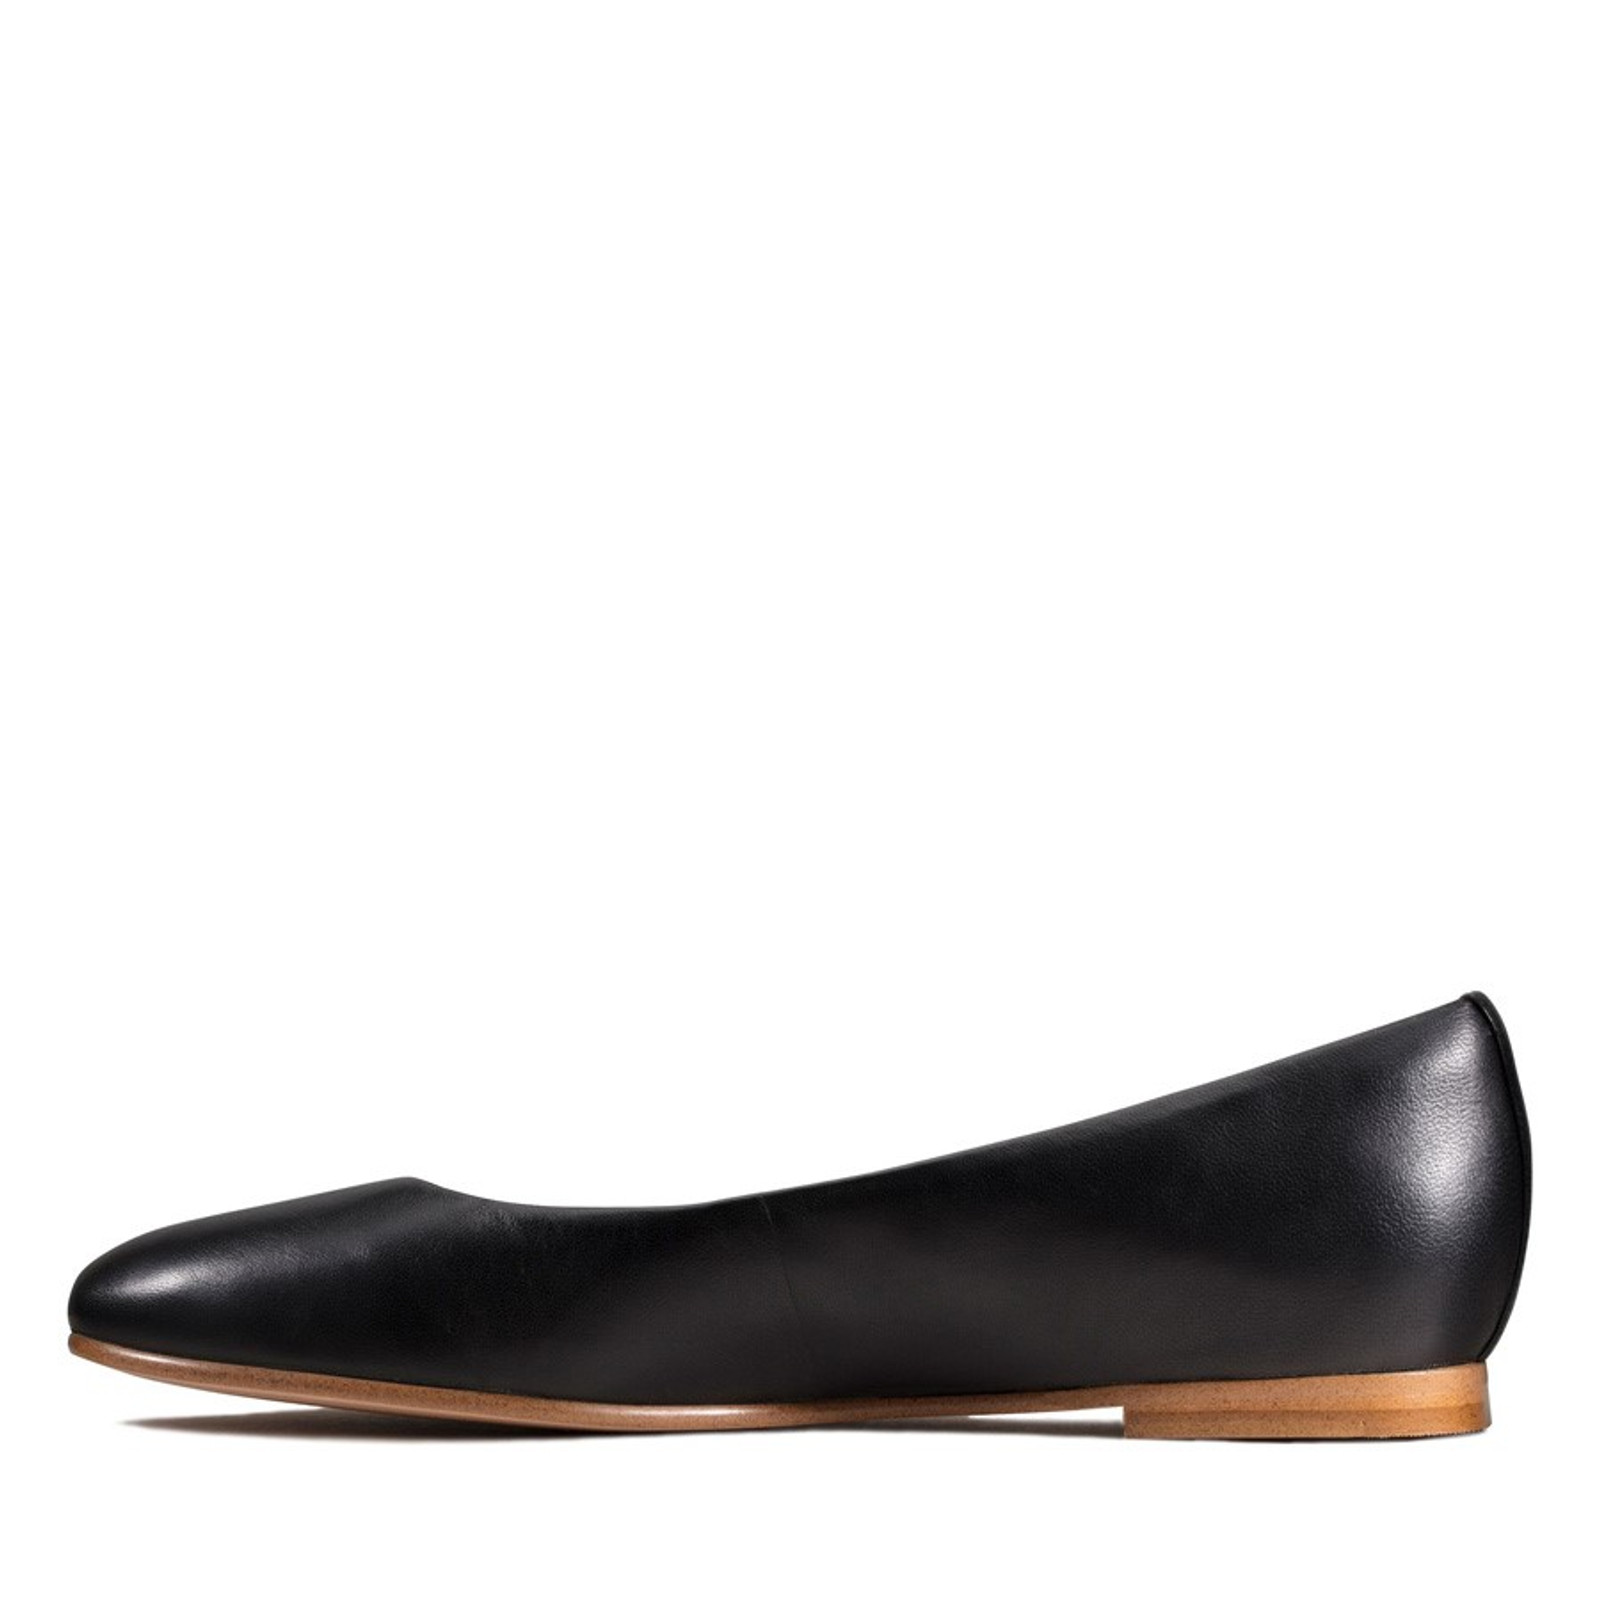 Clarks Womens GRACE PIPER Black Leather